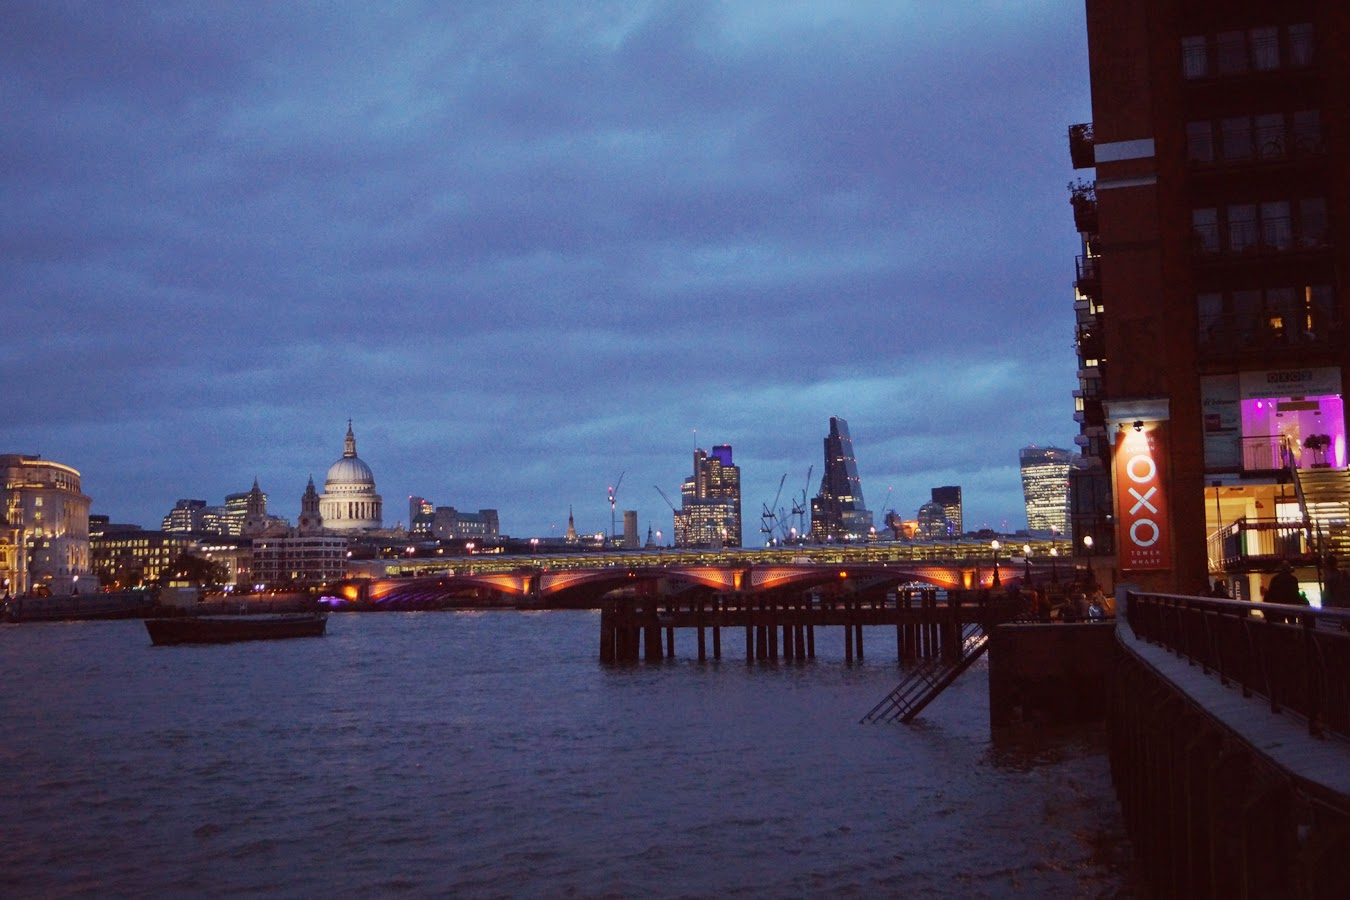 embankment+london+OXO+Tower